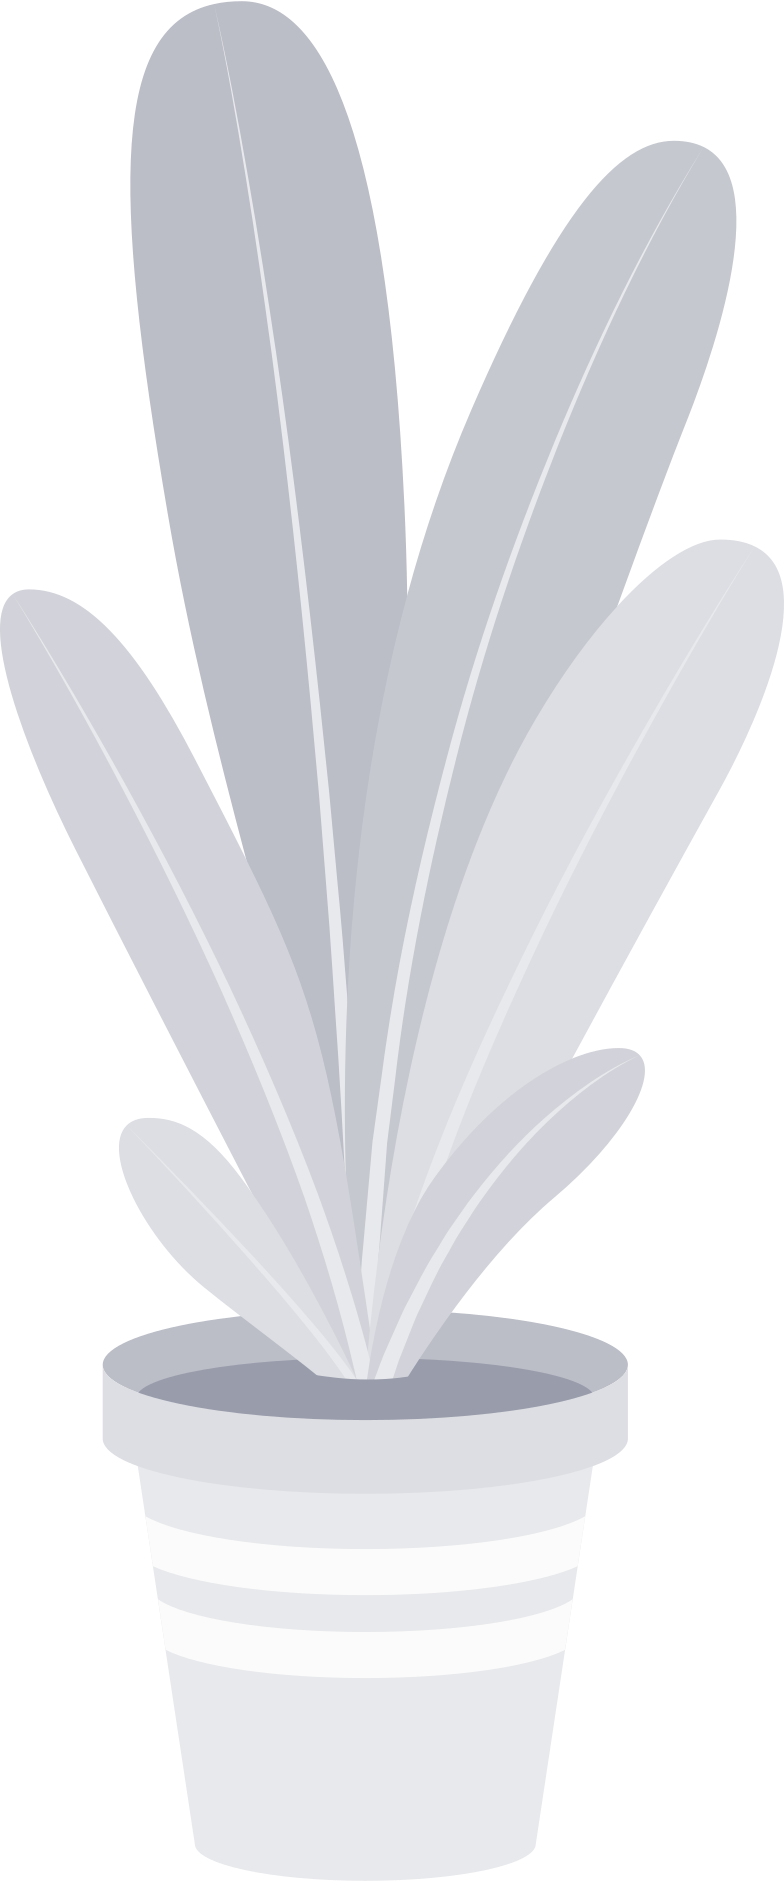 searching  plant Clipart illustration in PNG, SVG